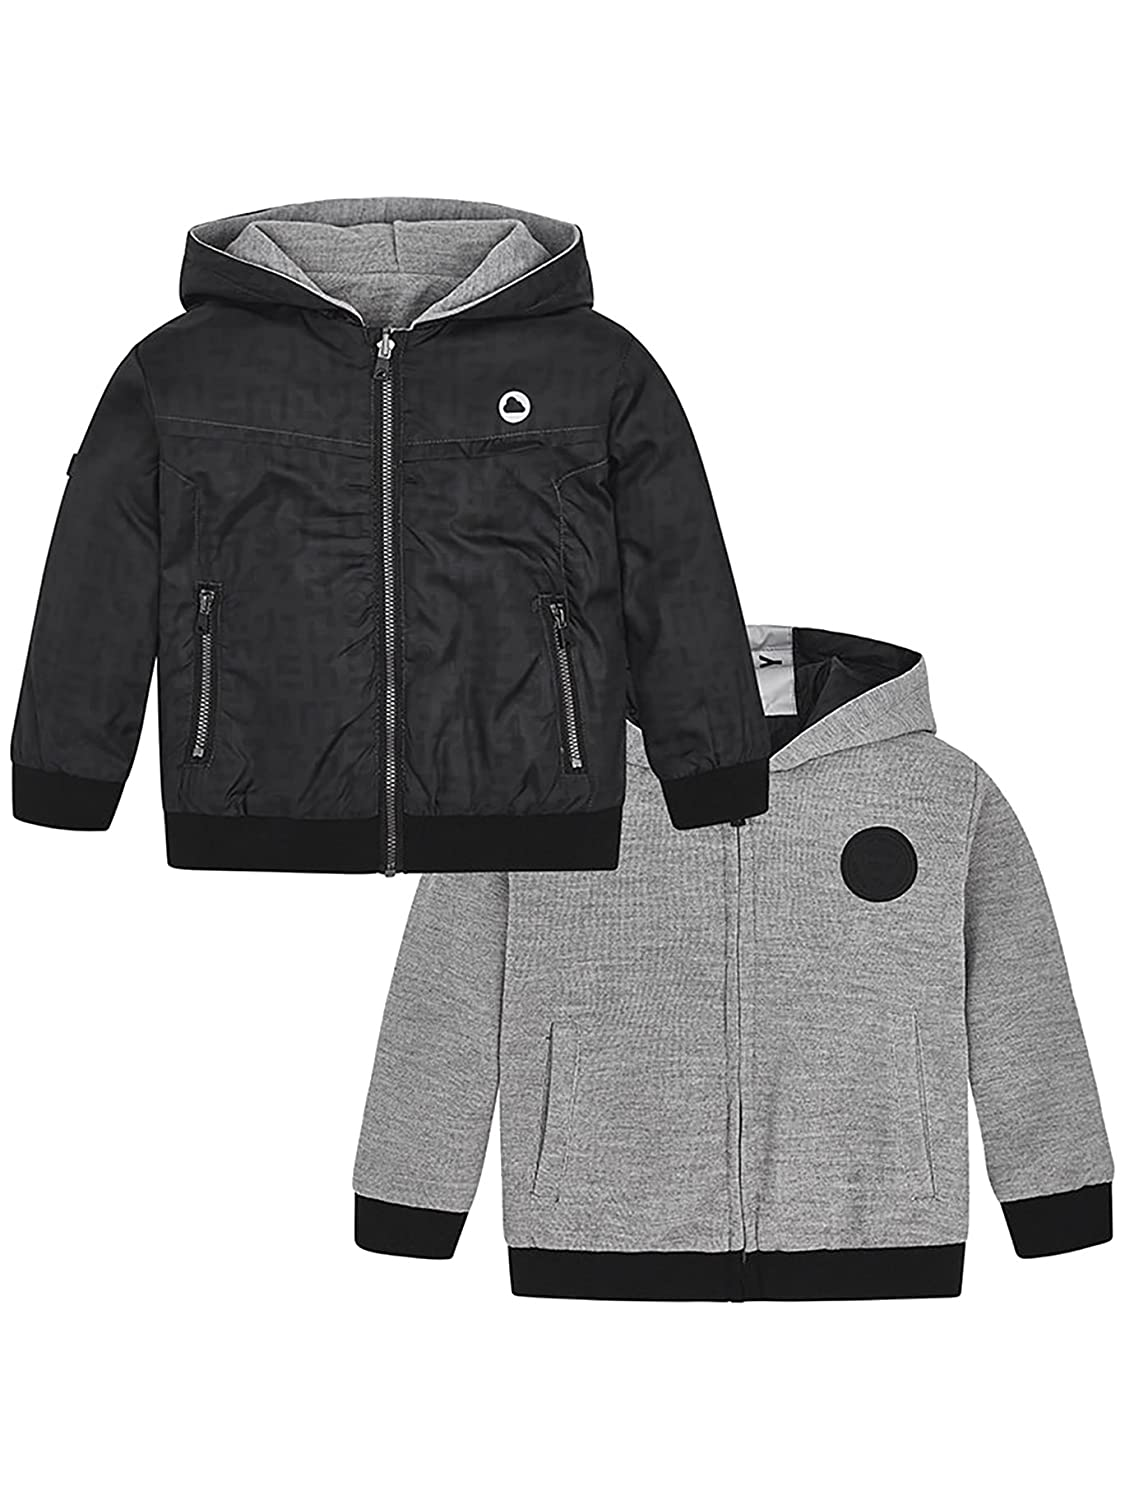 Jacket for Boys 4417 Mayoral Tire